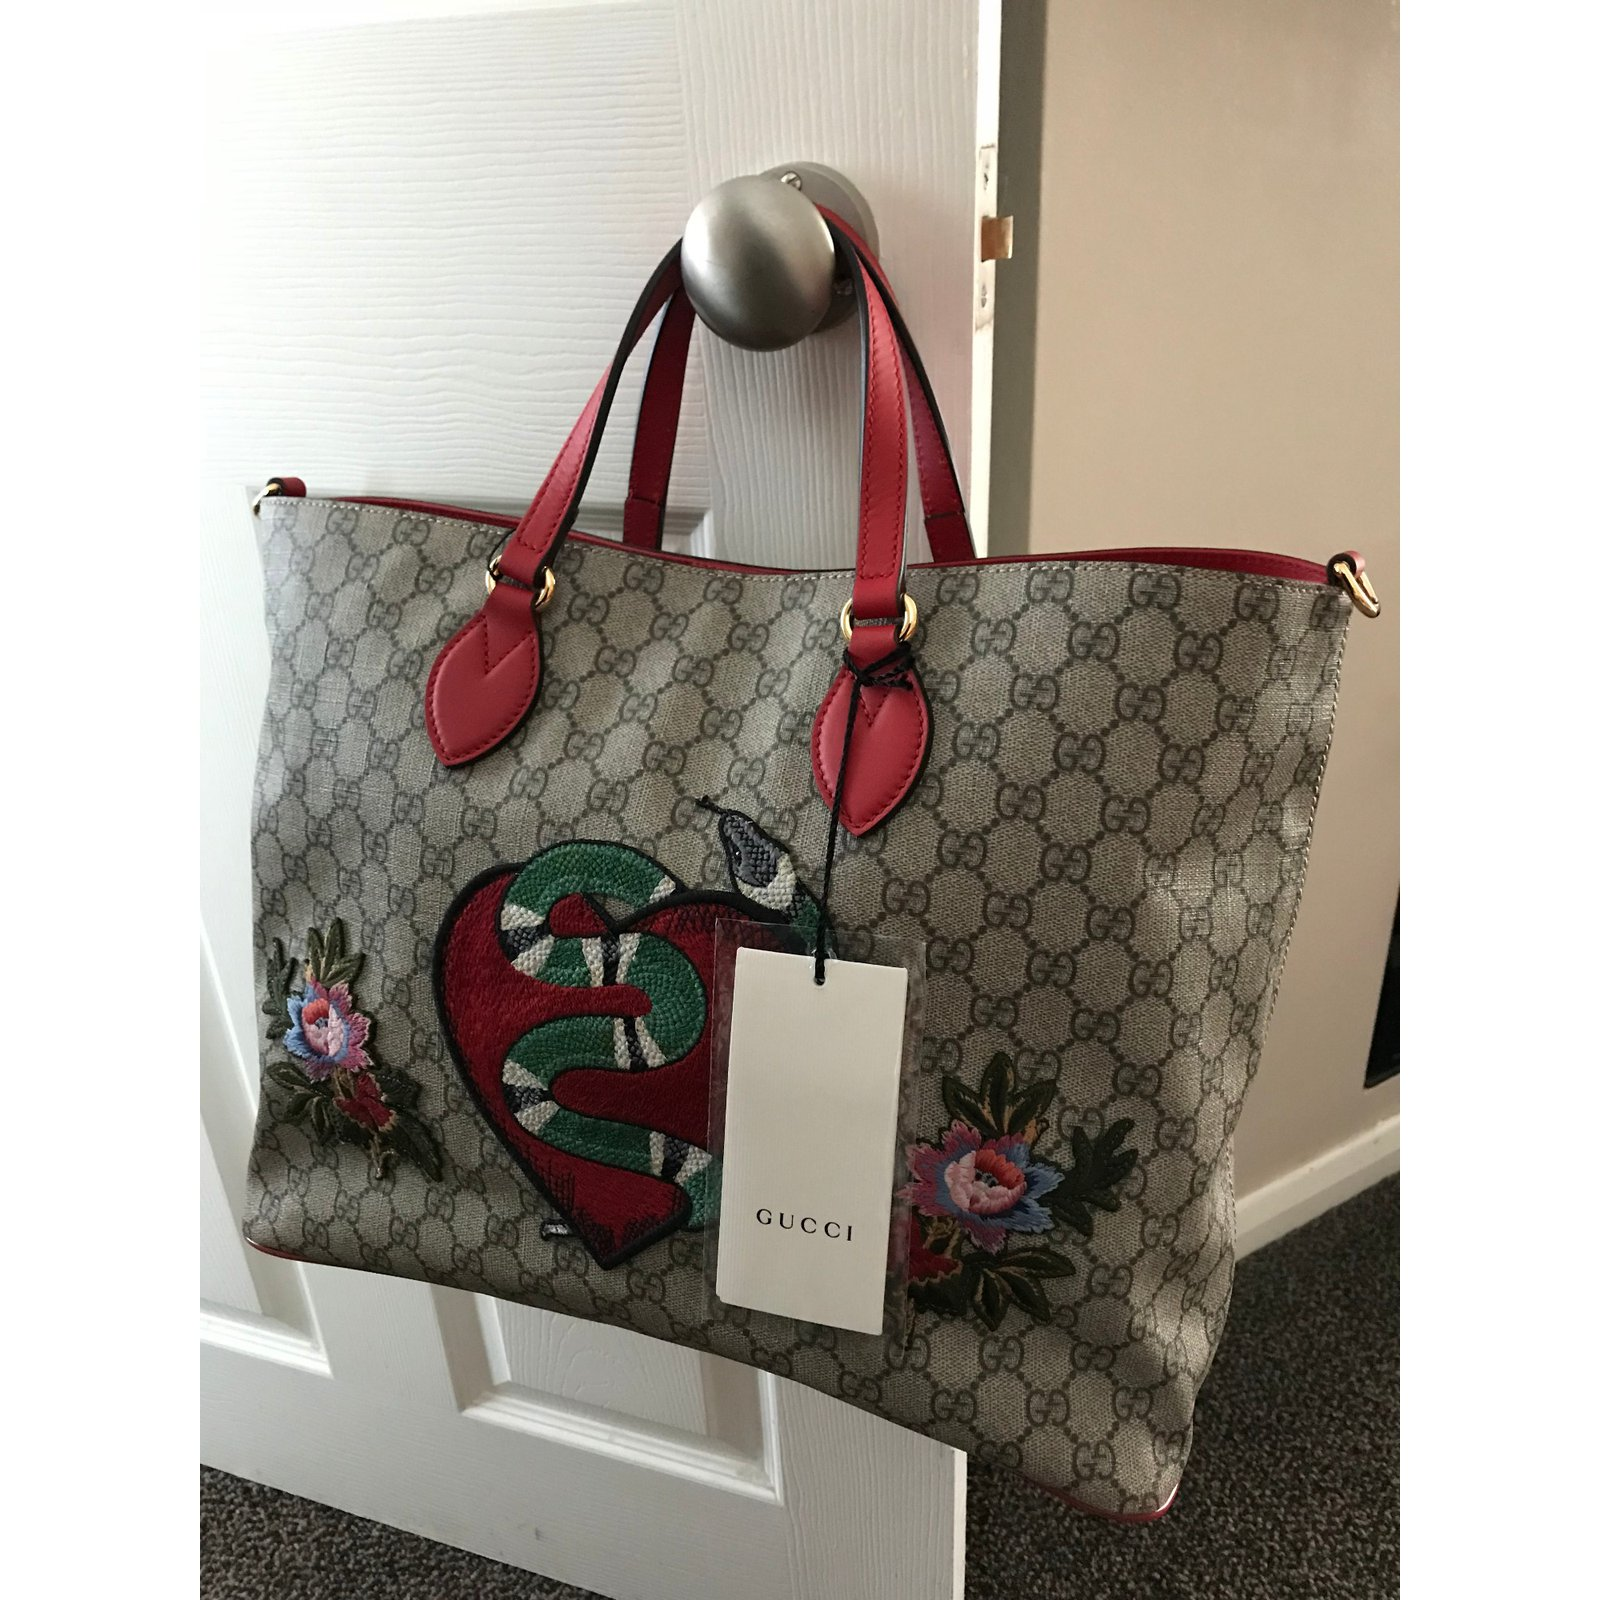 d11a7e25e6e Gucci Gucci Limited Edition Soft GG Supreme Tote Bag - Brand New with tags!  Handbags Cloth Beige ref.58453 - Joli Closet